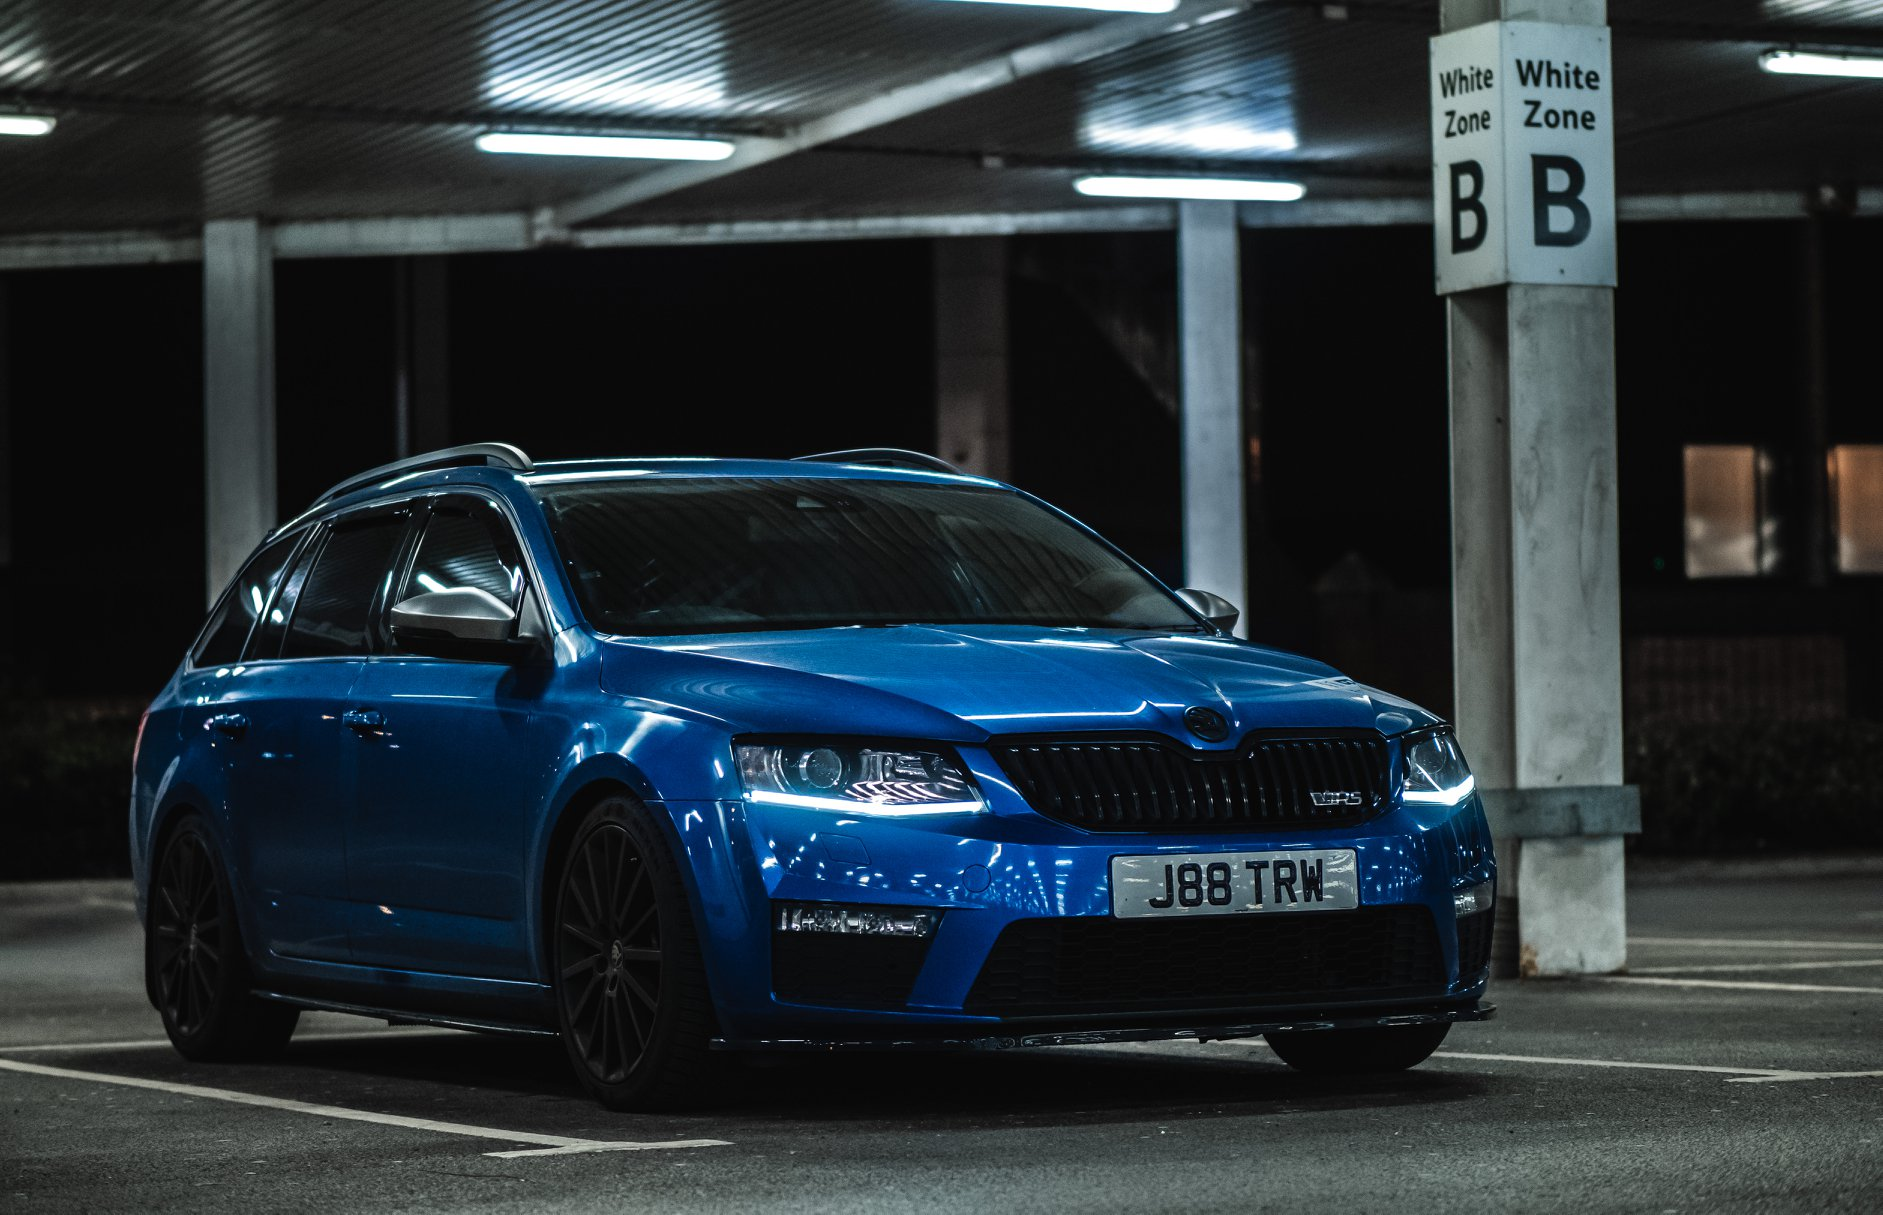 Modified Skoda Octavia Vrs Mk3 Gallery Hypermiling Fuel Saving Tips Industry News Forum